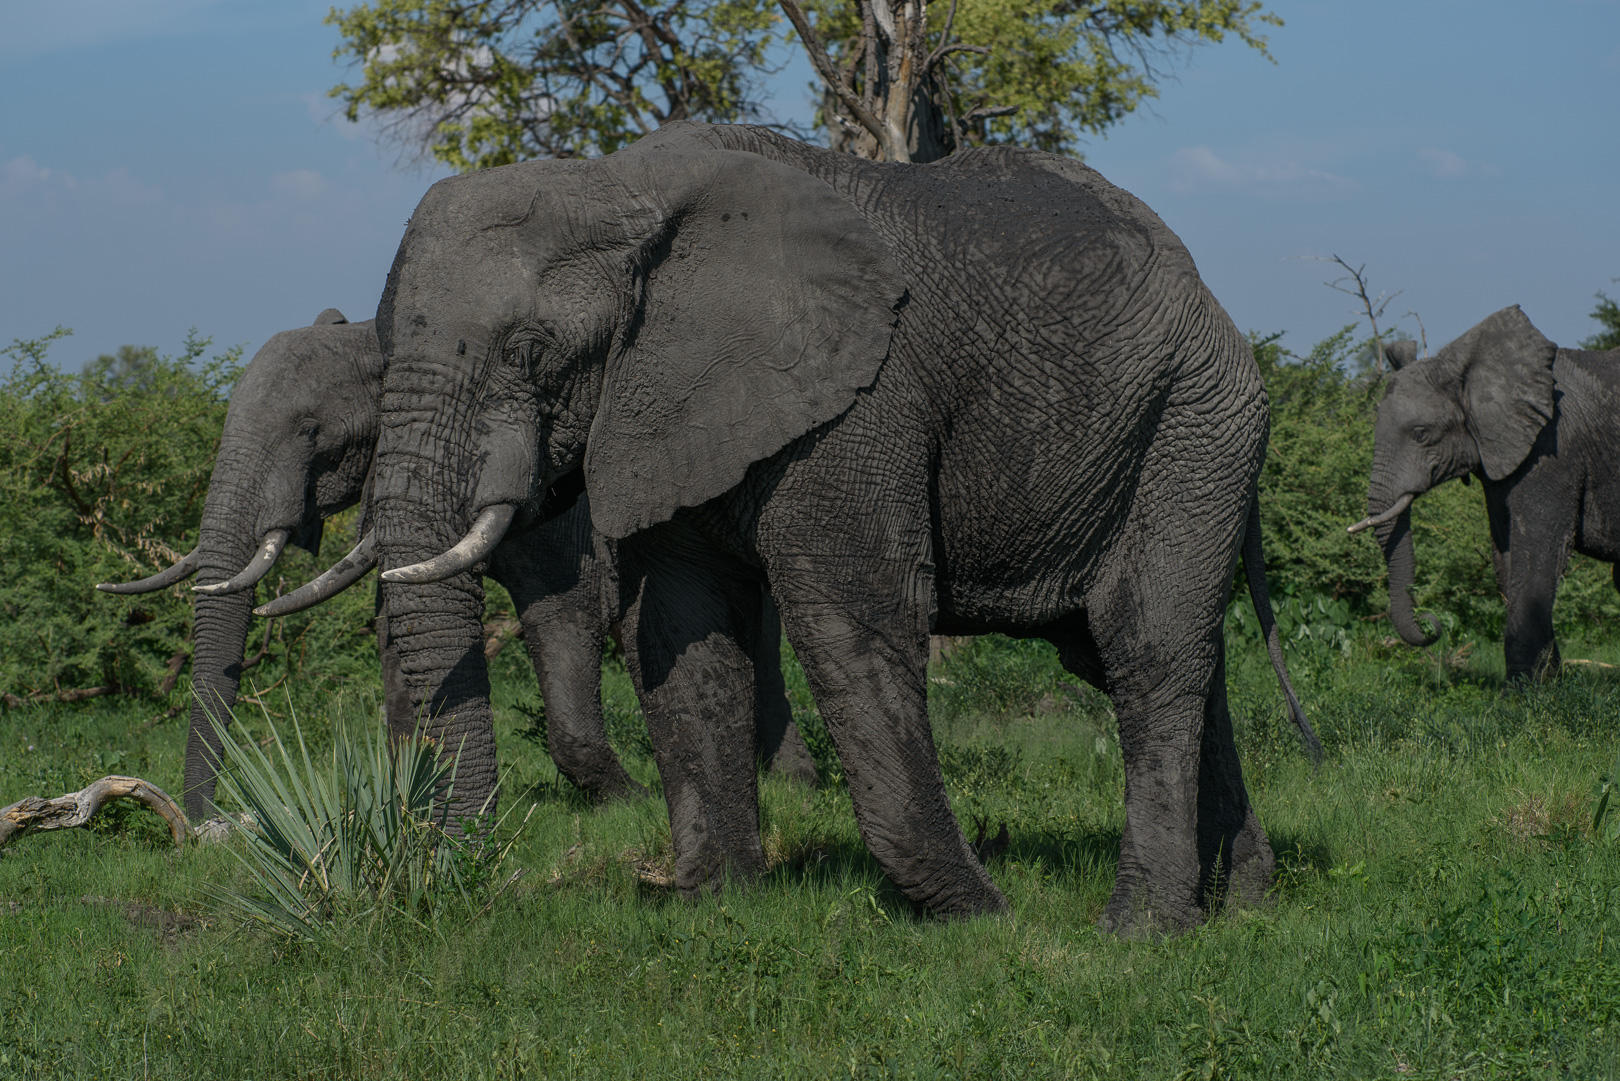 There are many elephants around the camp